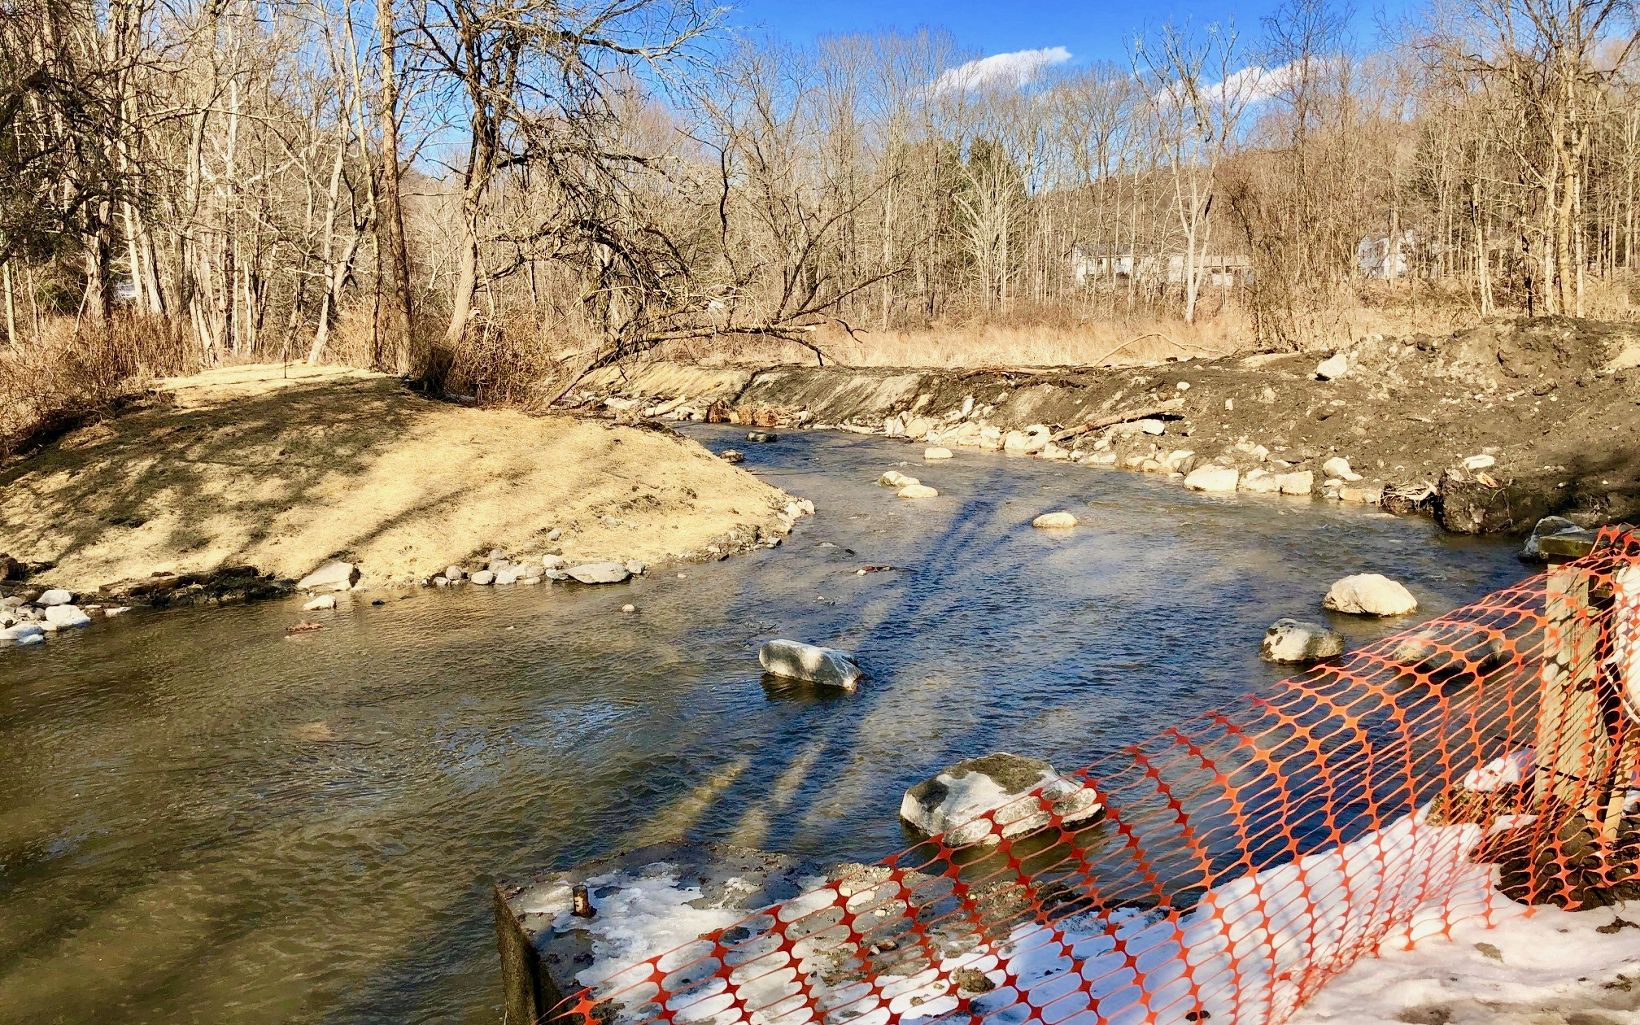 Dam removal projects, like the removal of the Old Papermill Dam, can take years, but the results are immediate.